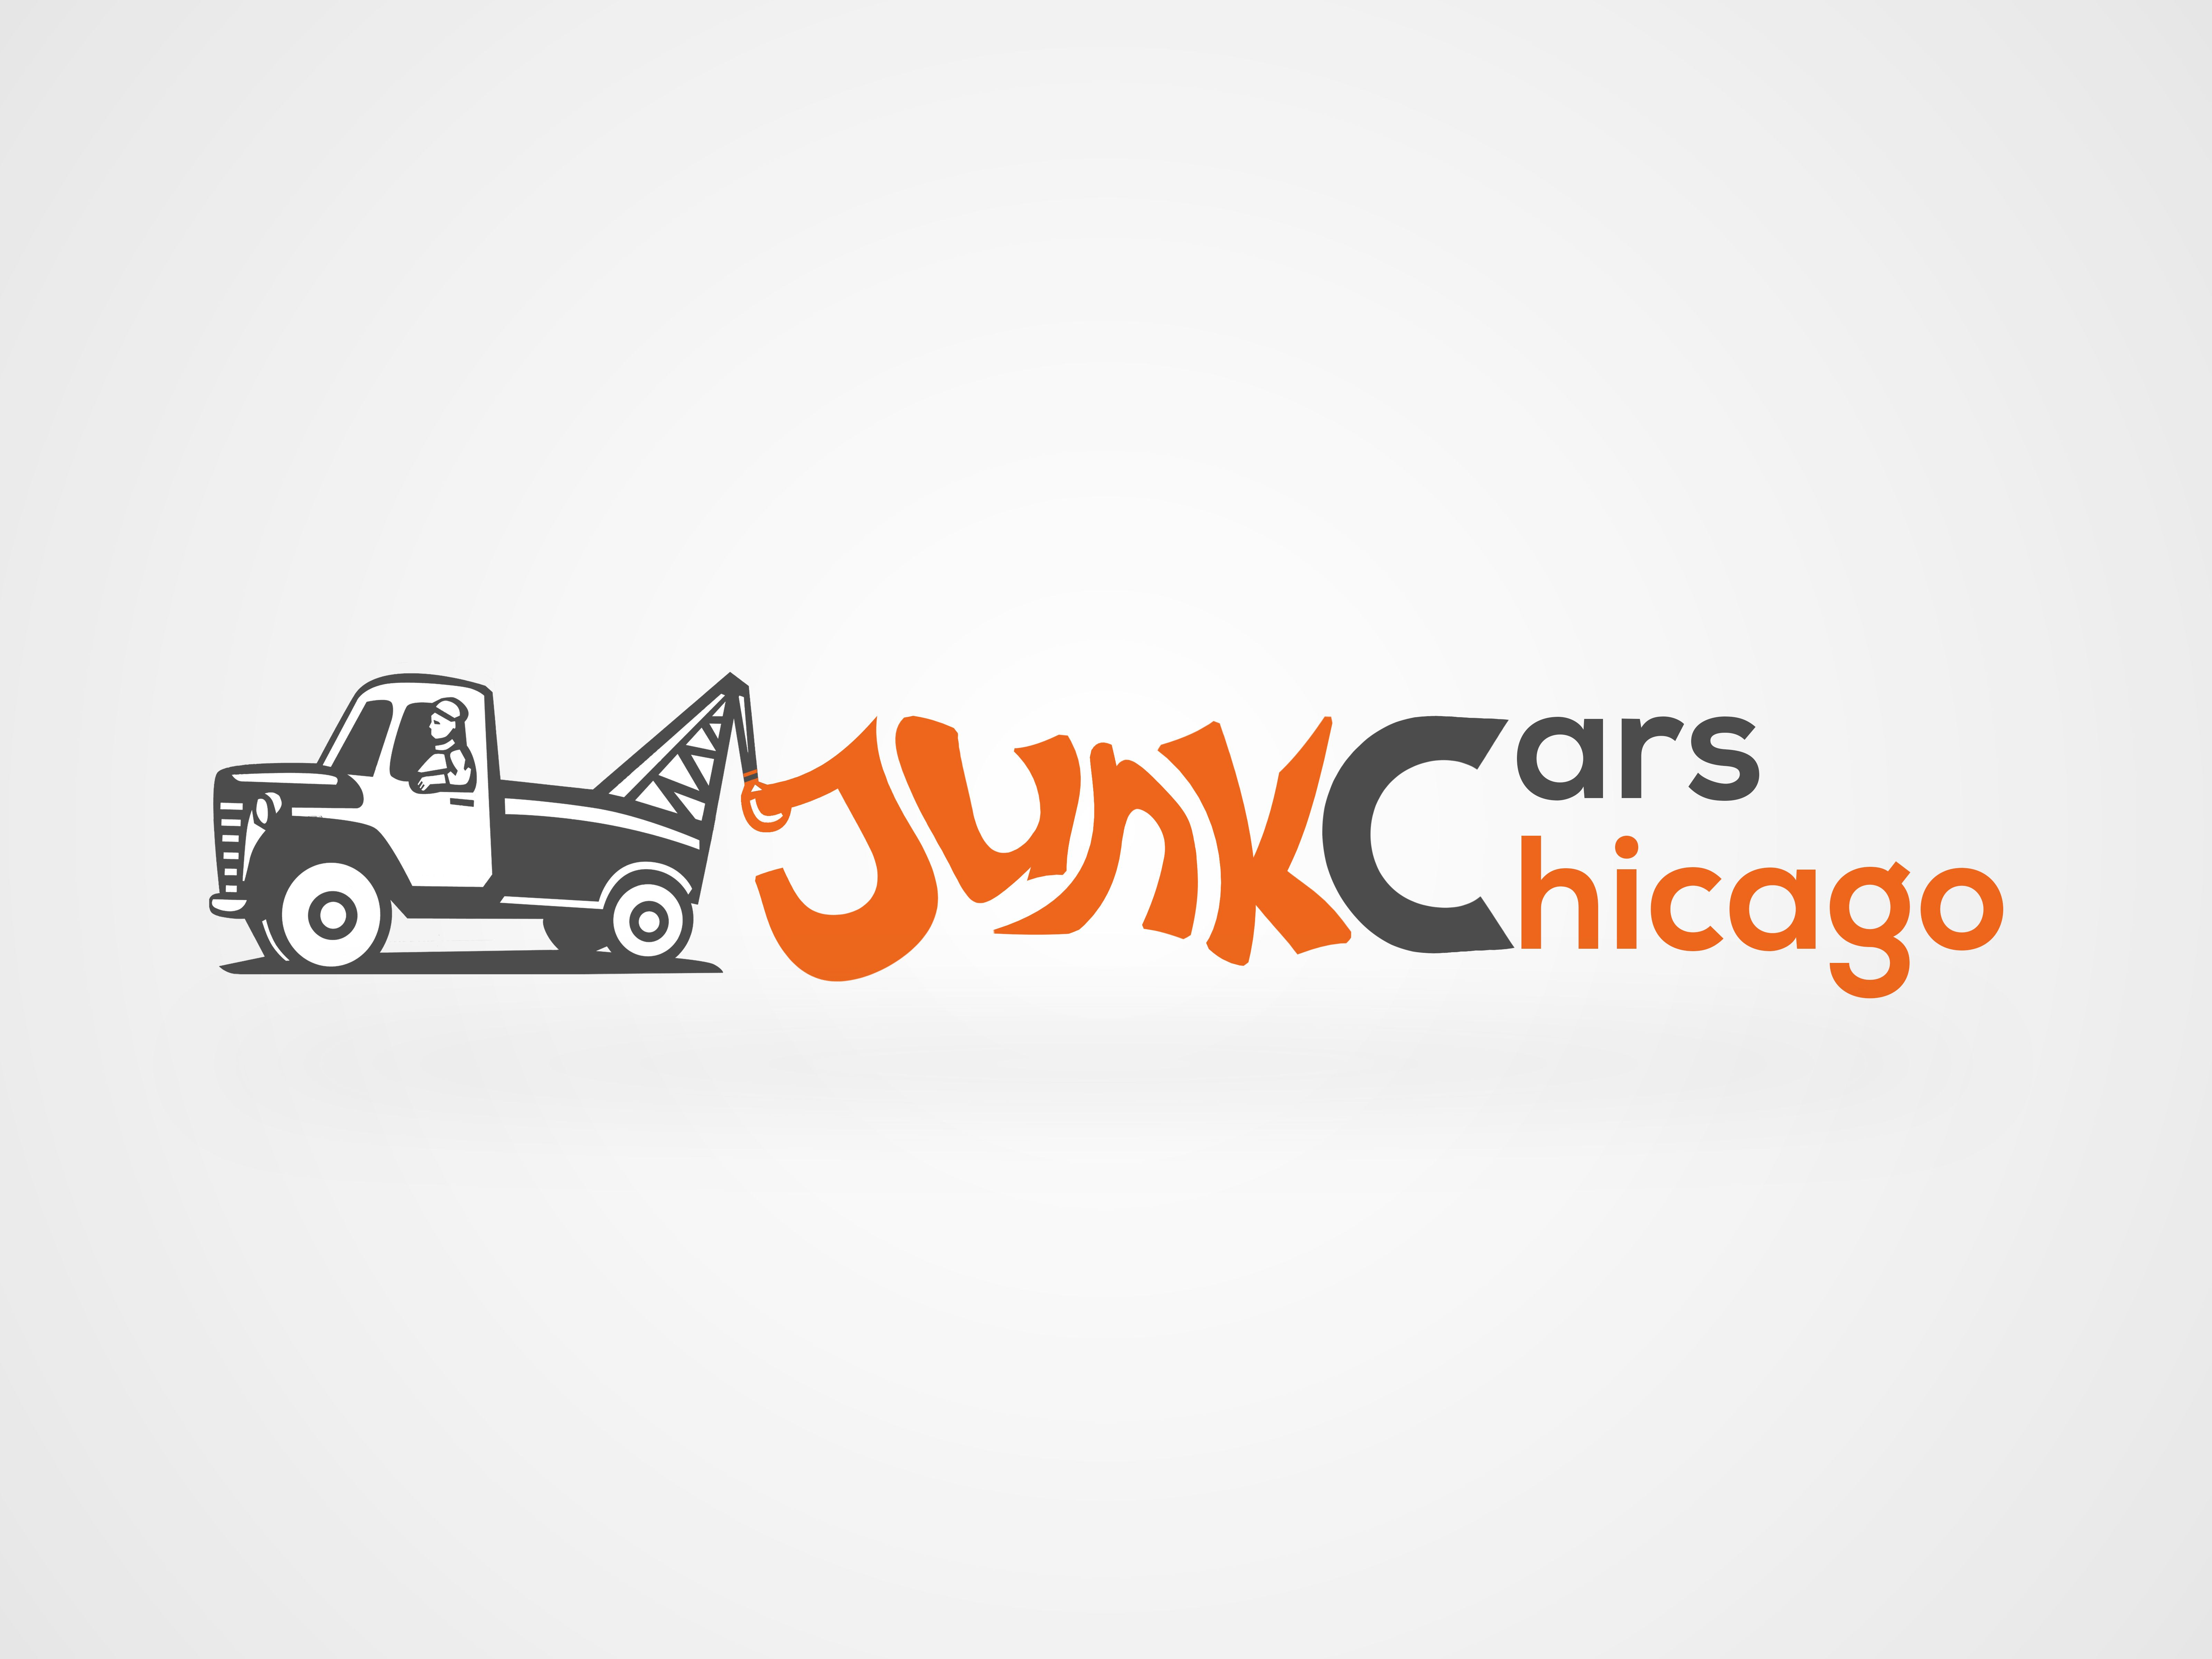 cash for junk cars chicago. we buy wrecked vehicles in